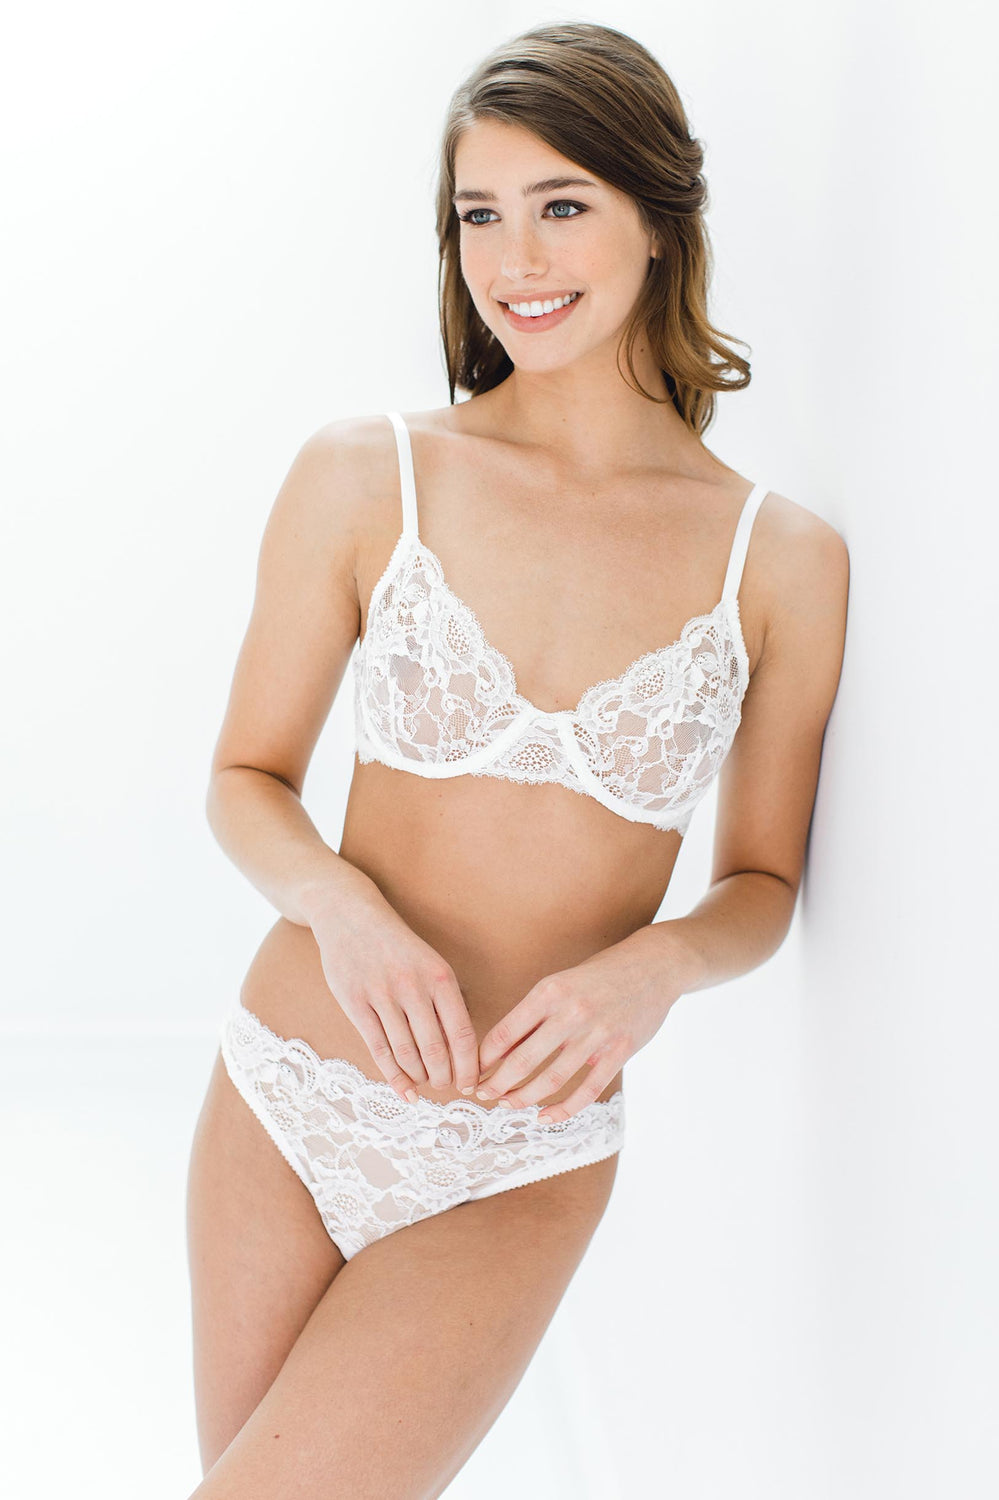 42f10caf3d ... Peony French lace bikini panties briefs in Ivory ...